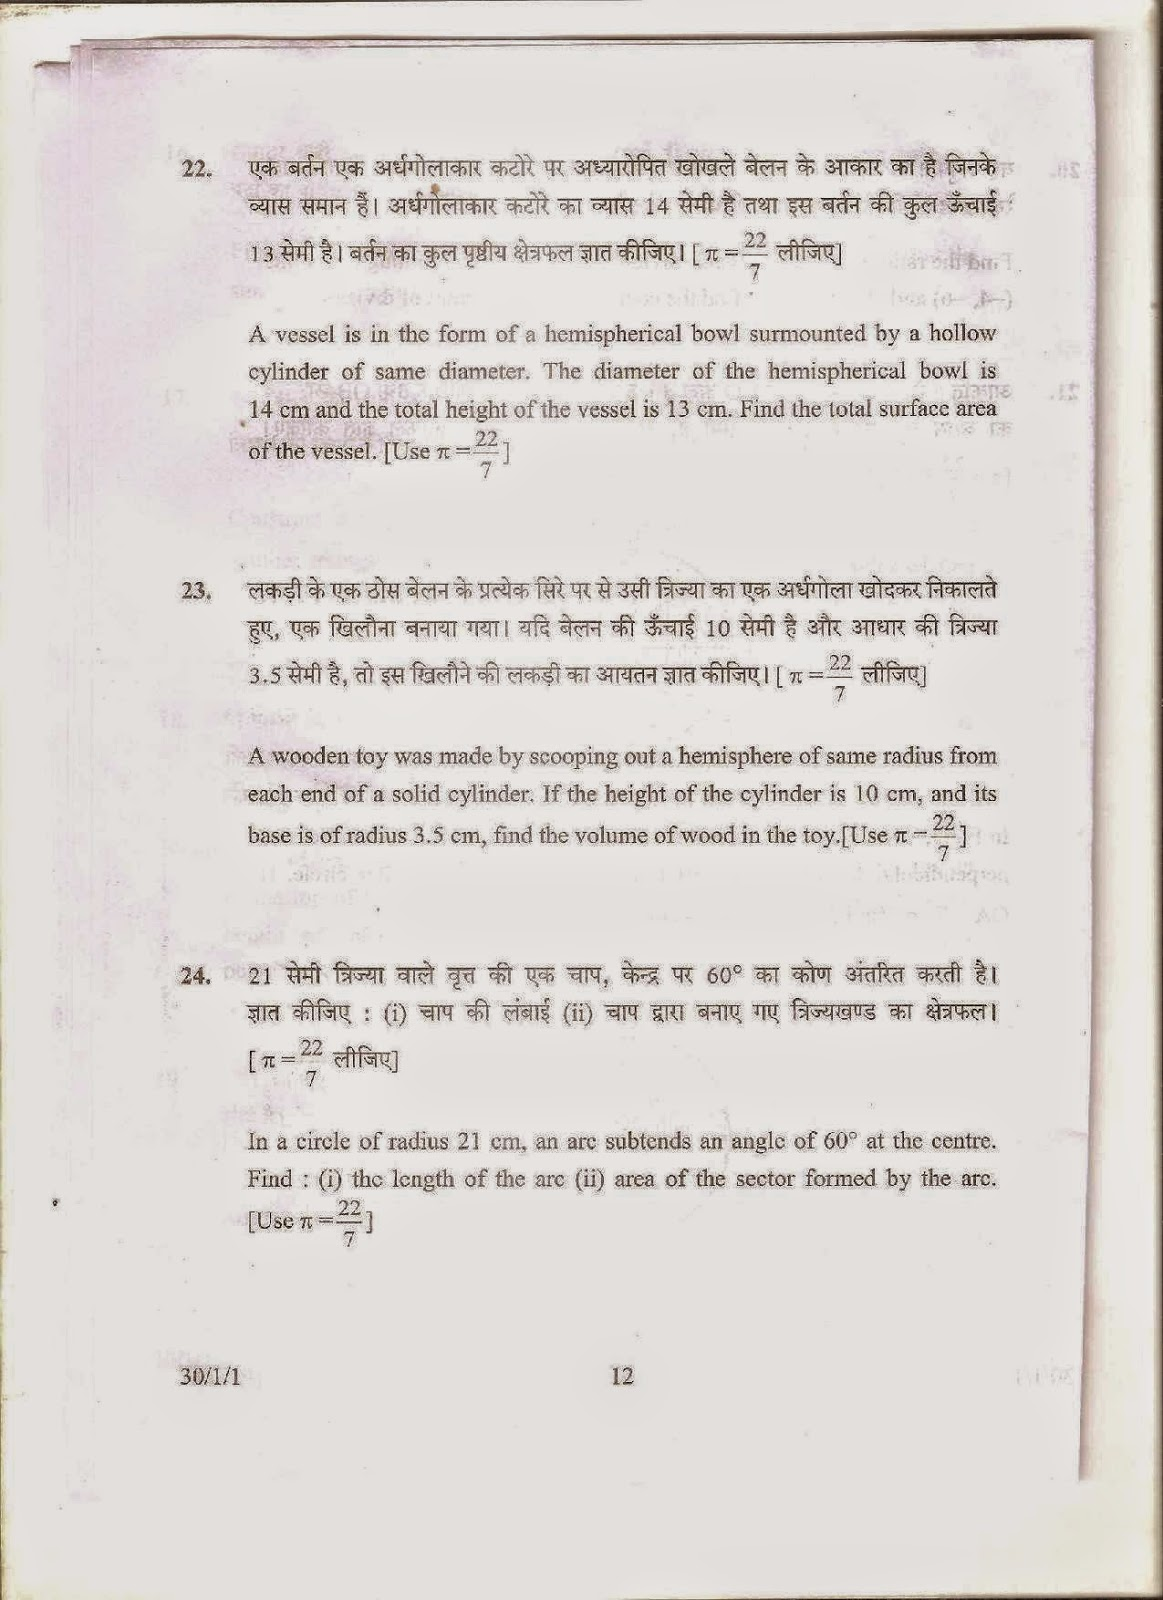 Cbse Board Exam Question Papers Class 10 Hindi - Rajasthan Board g